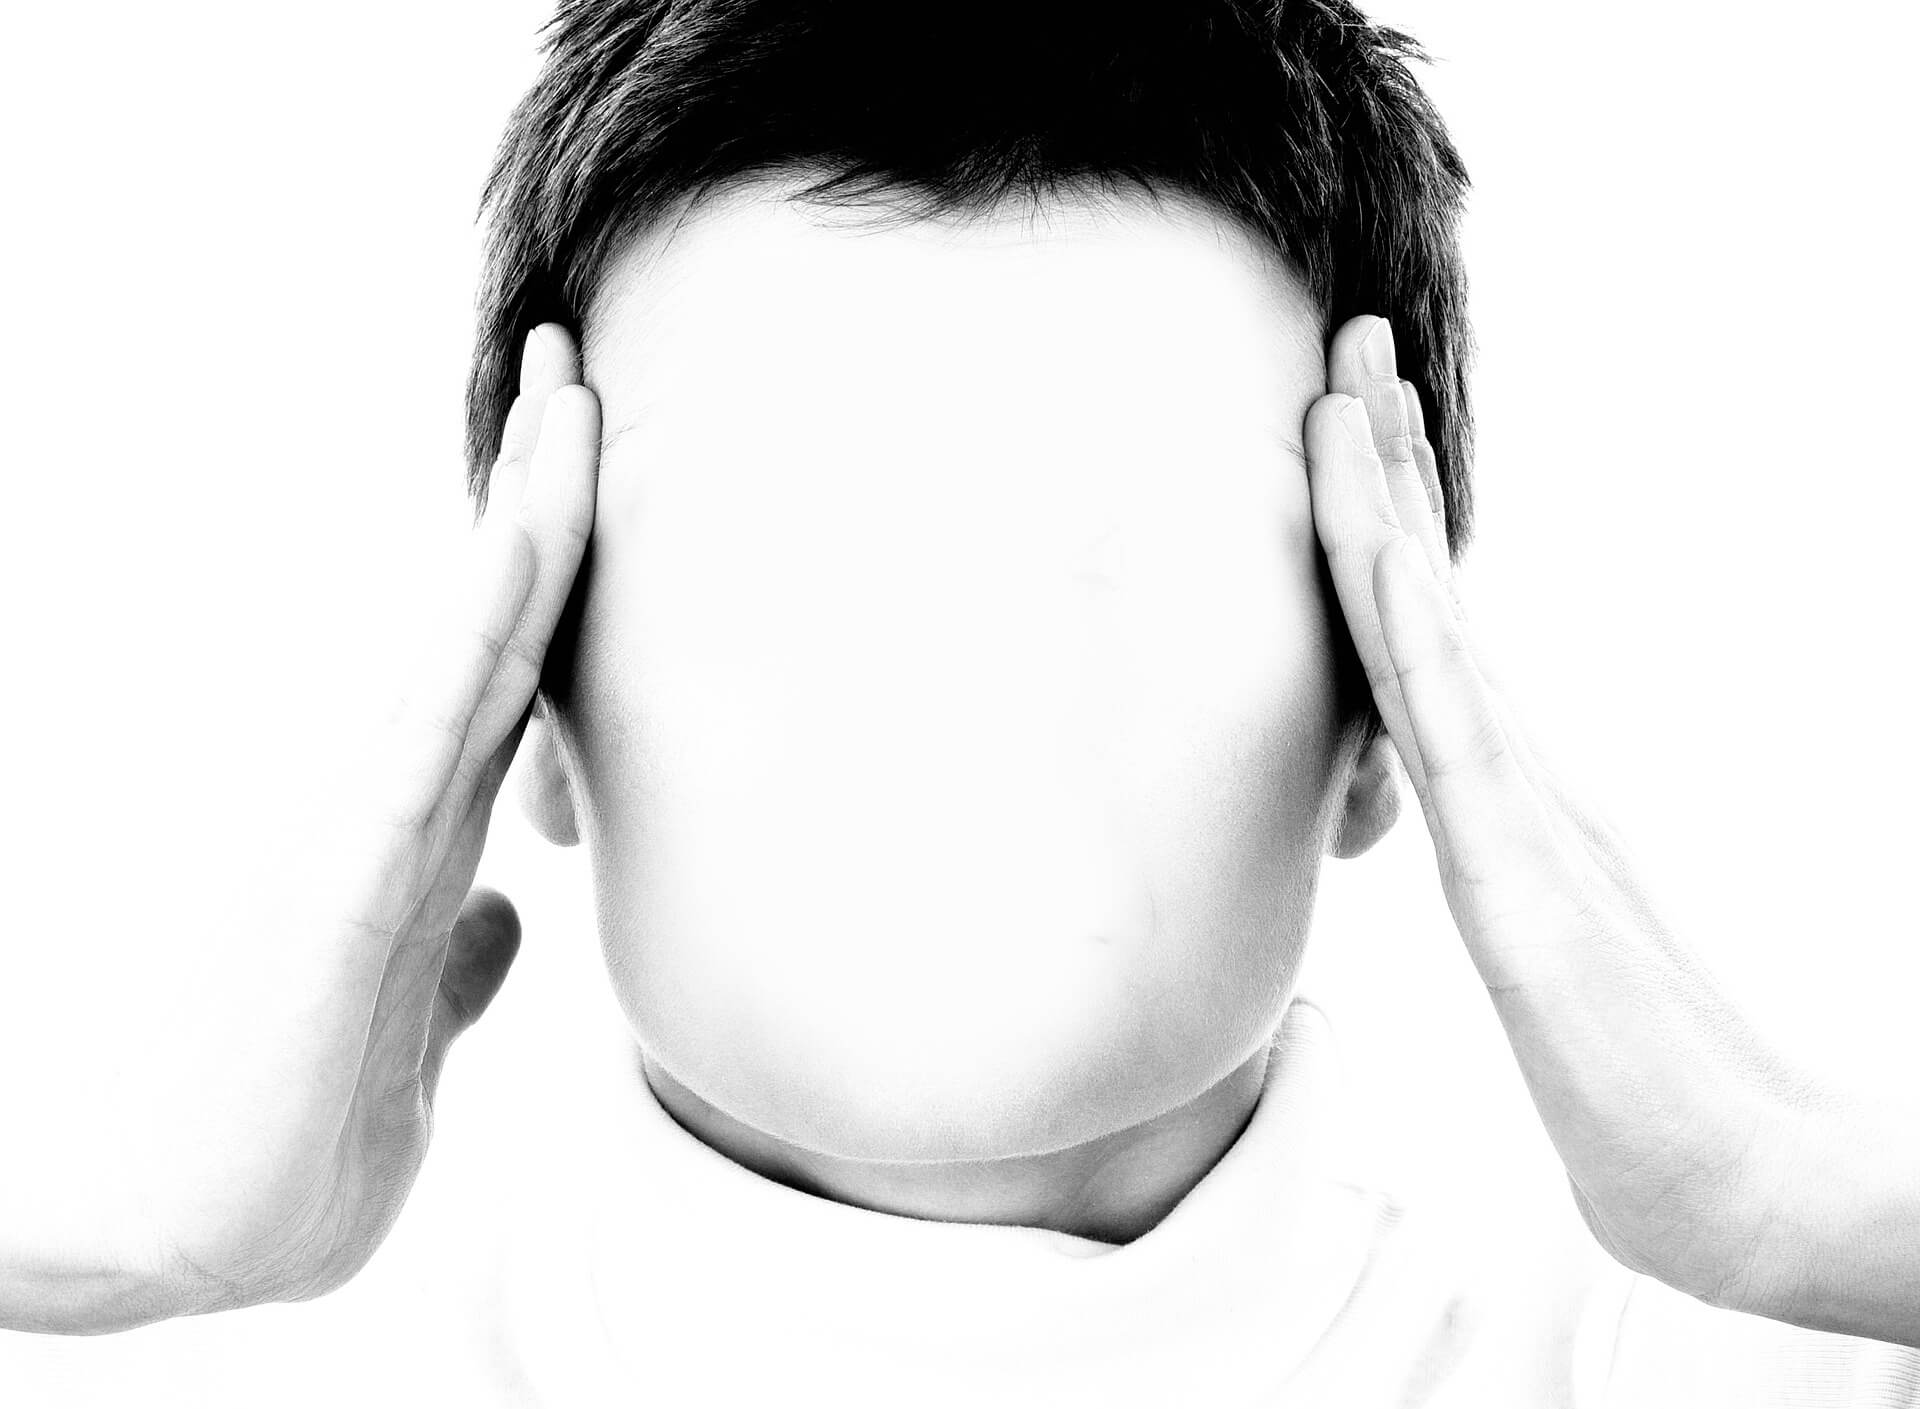 A man places his fingers at his temples as he is in pain. He is a candidate for a post-concussive syndrome lawsuit